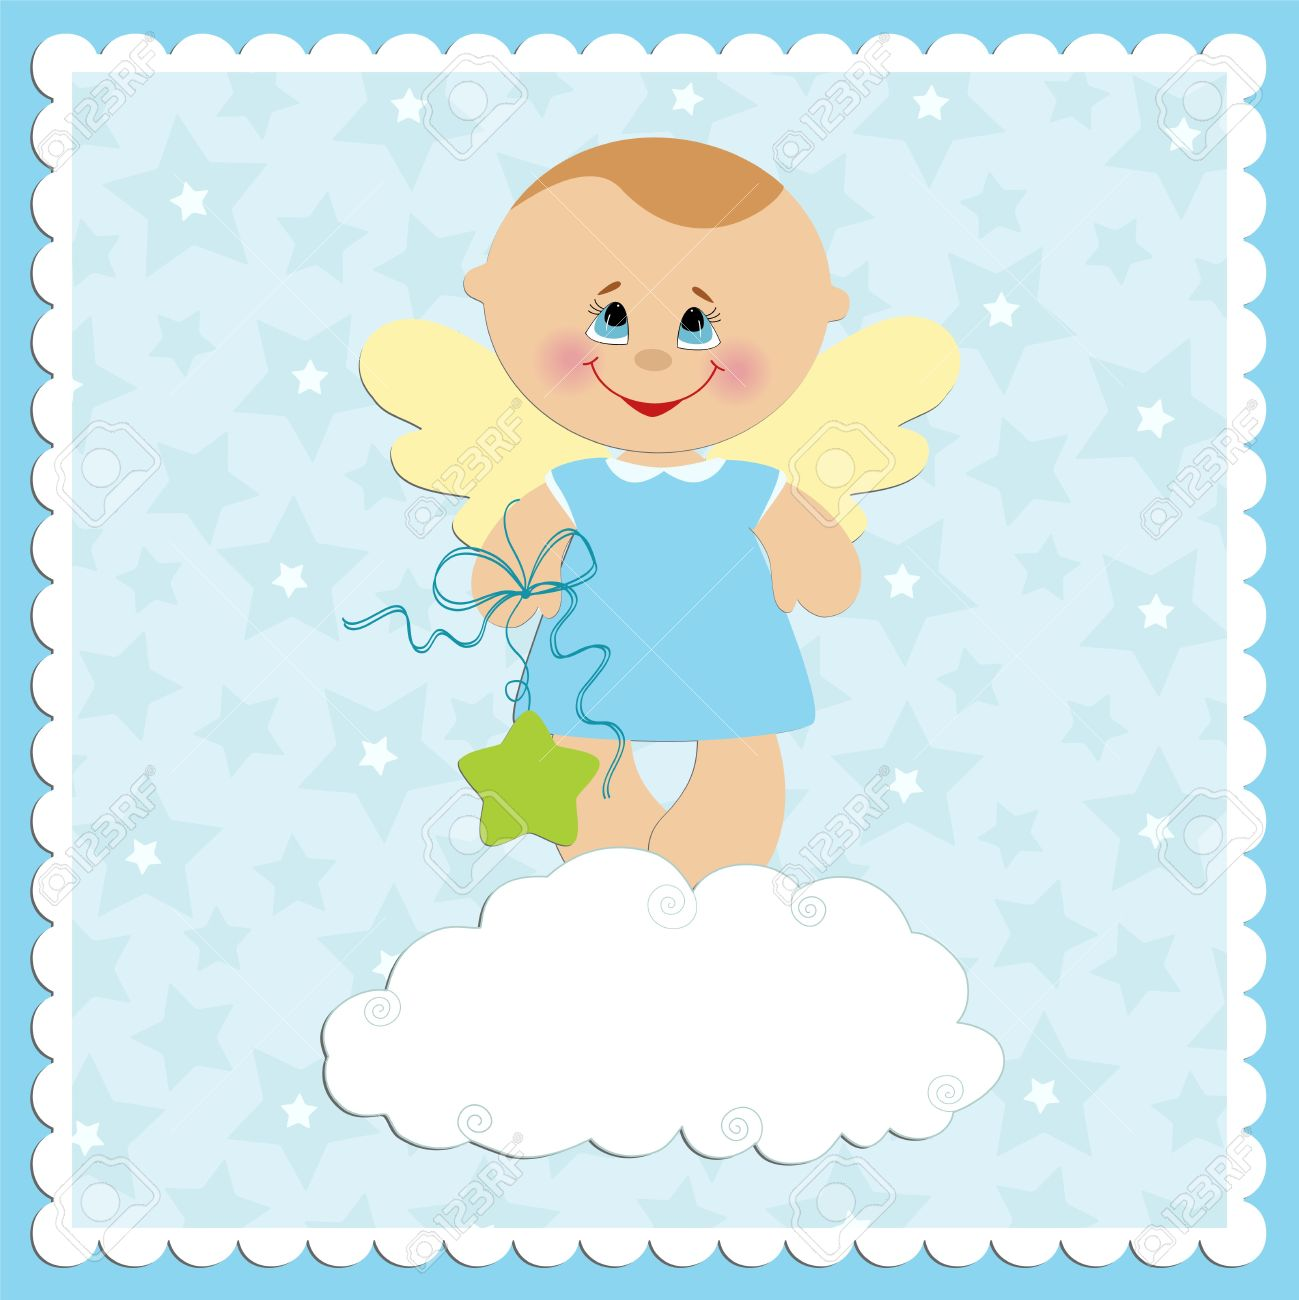 Images of Baby Boy Angels Heaven And Baby Angels